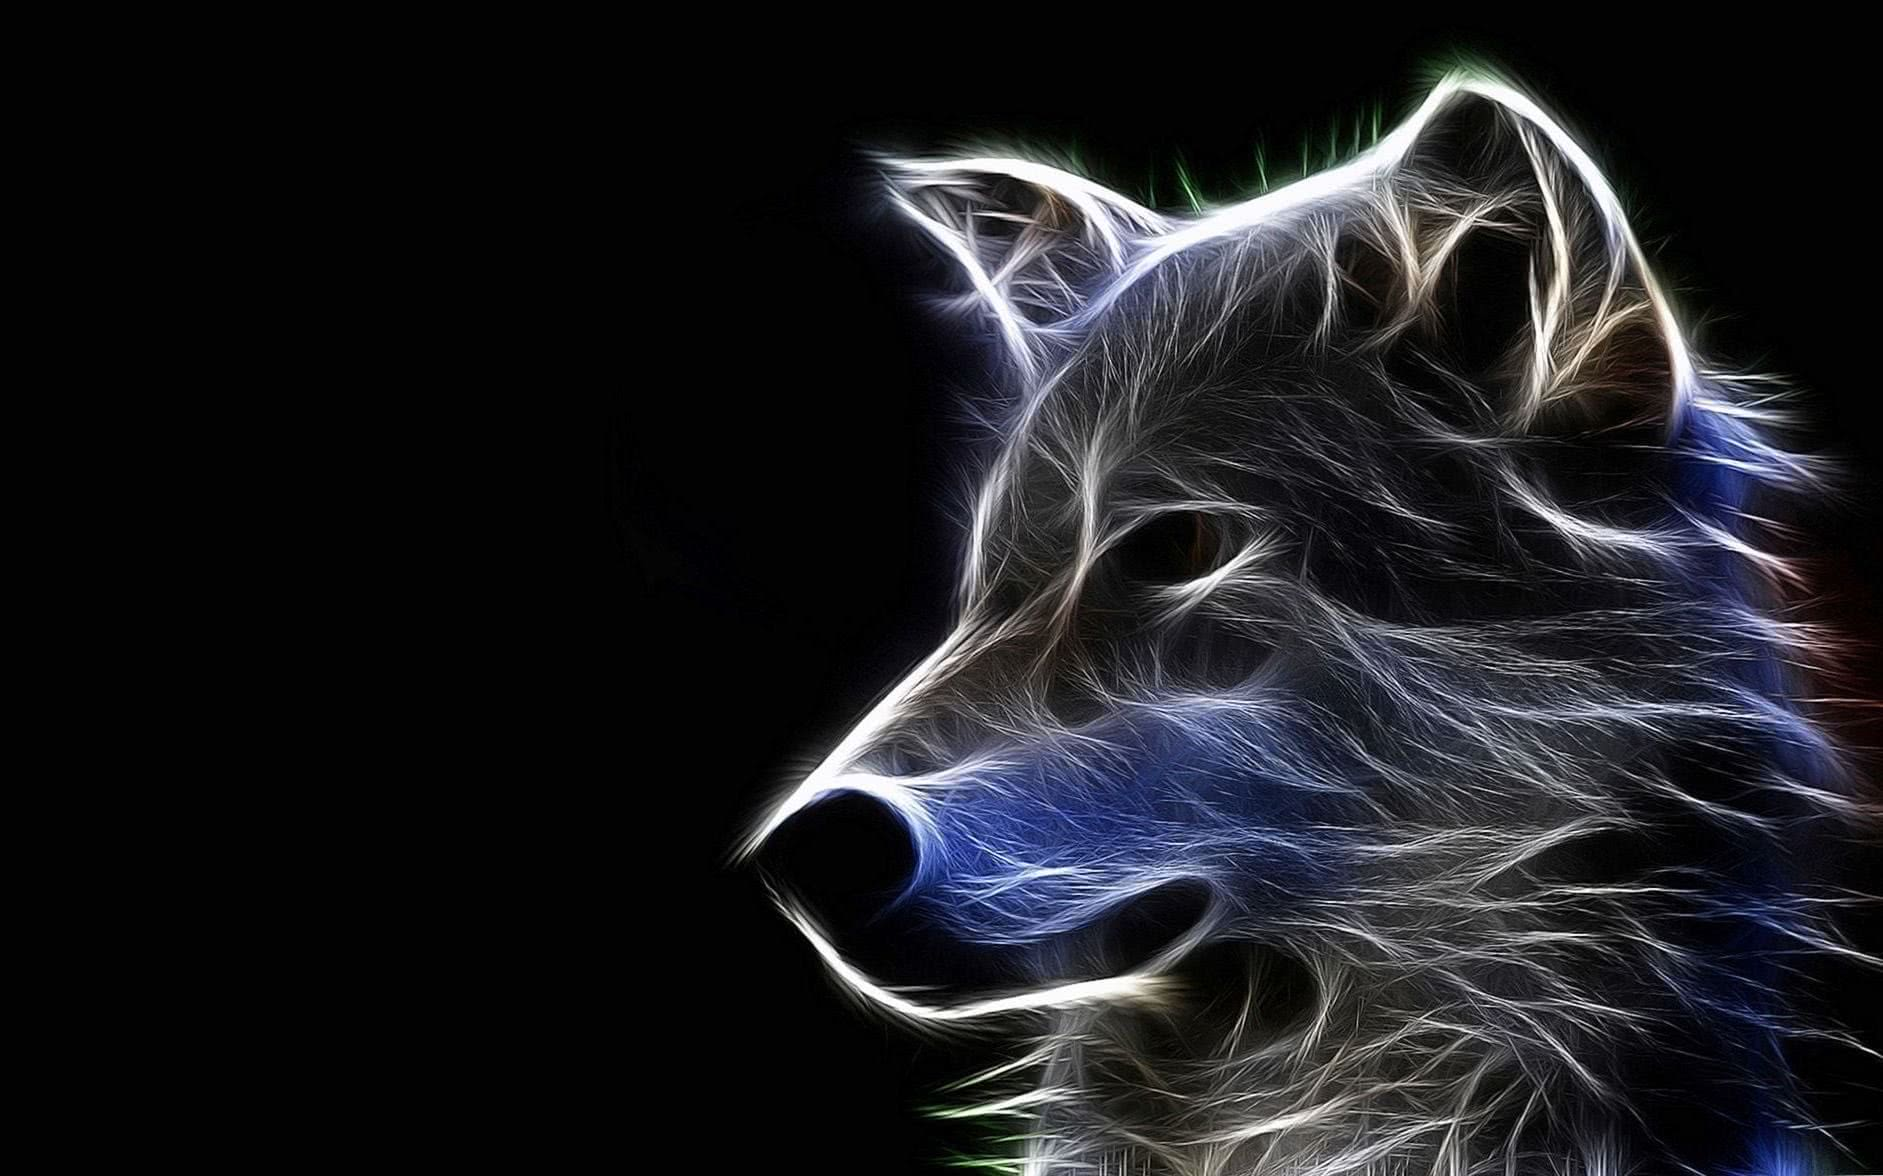 Cool Wallpaper Of Wolves